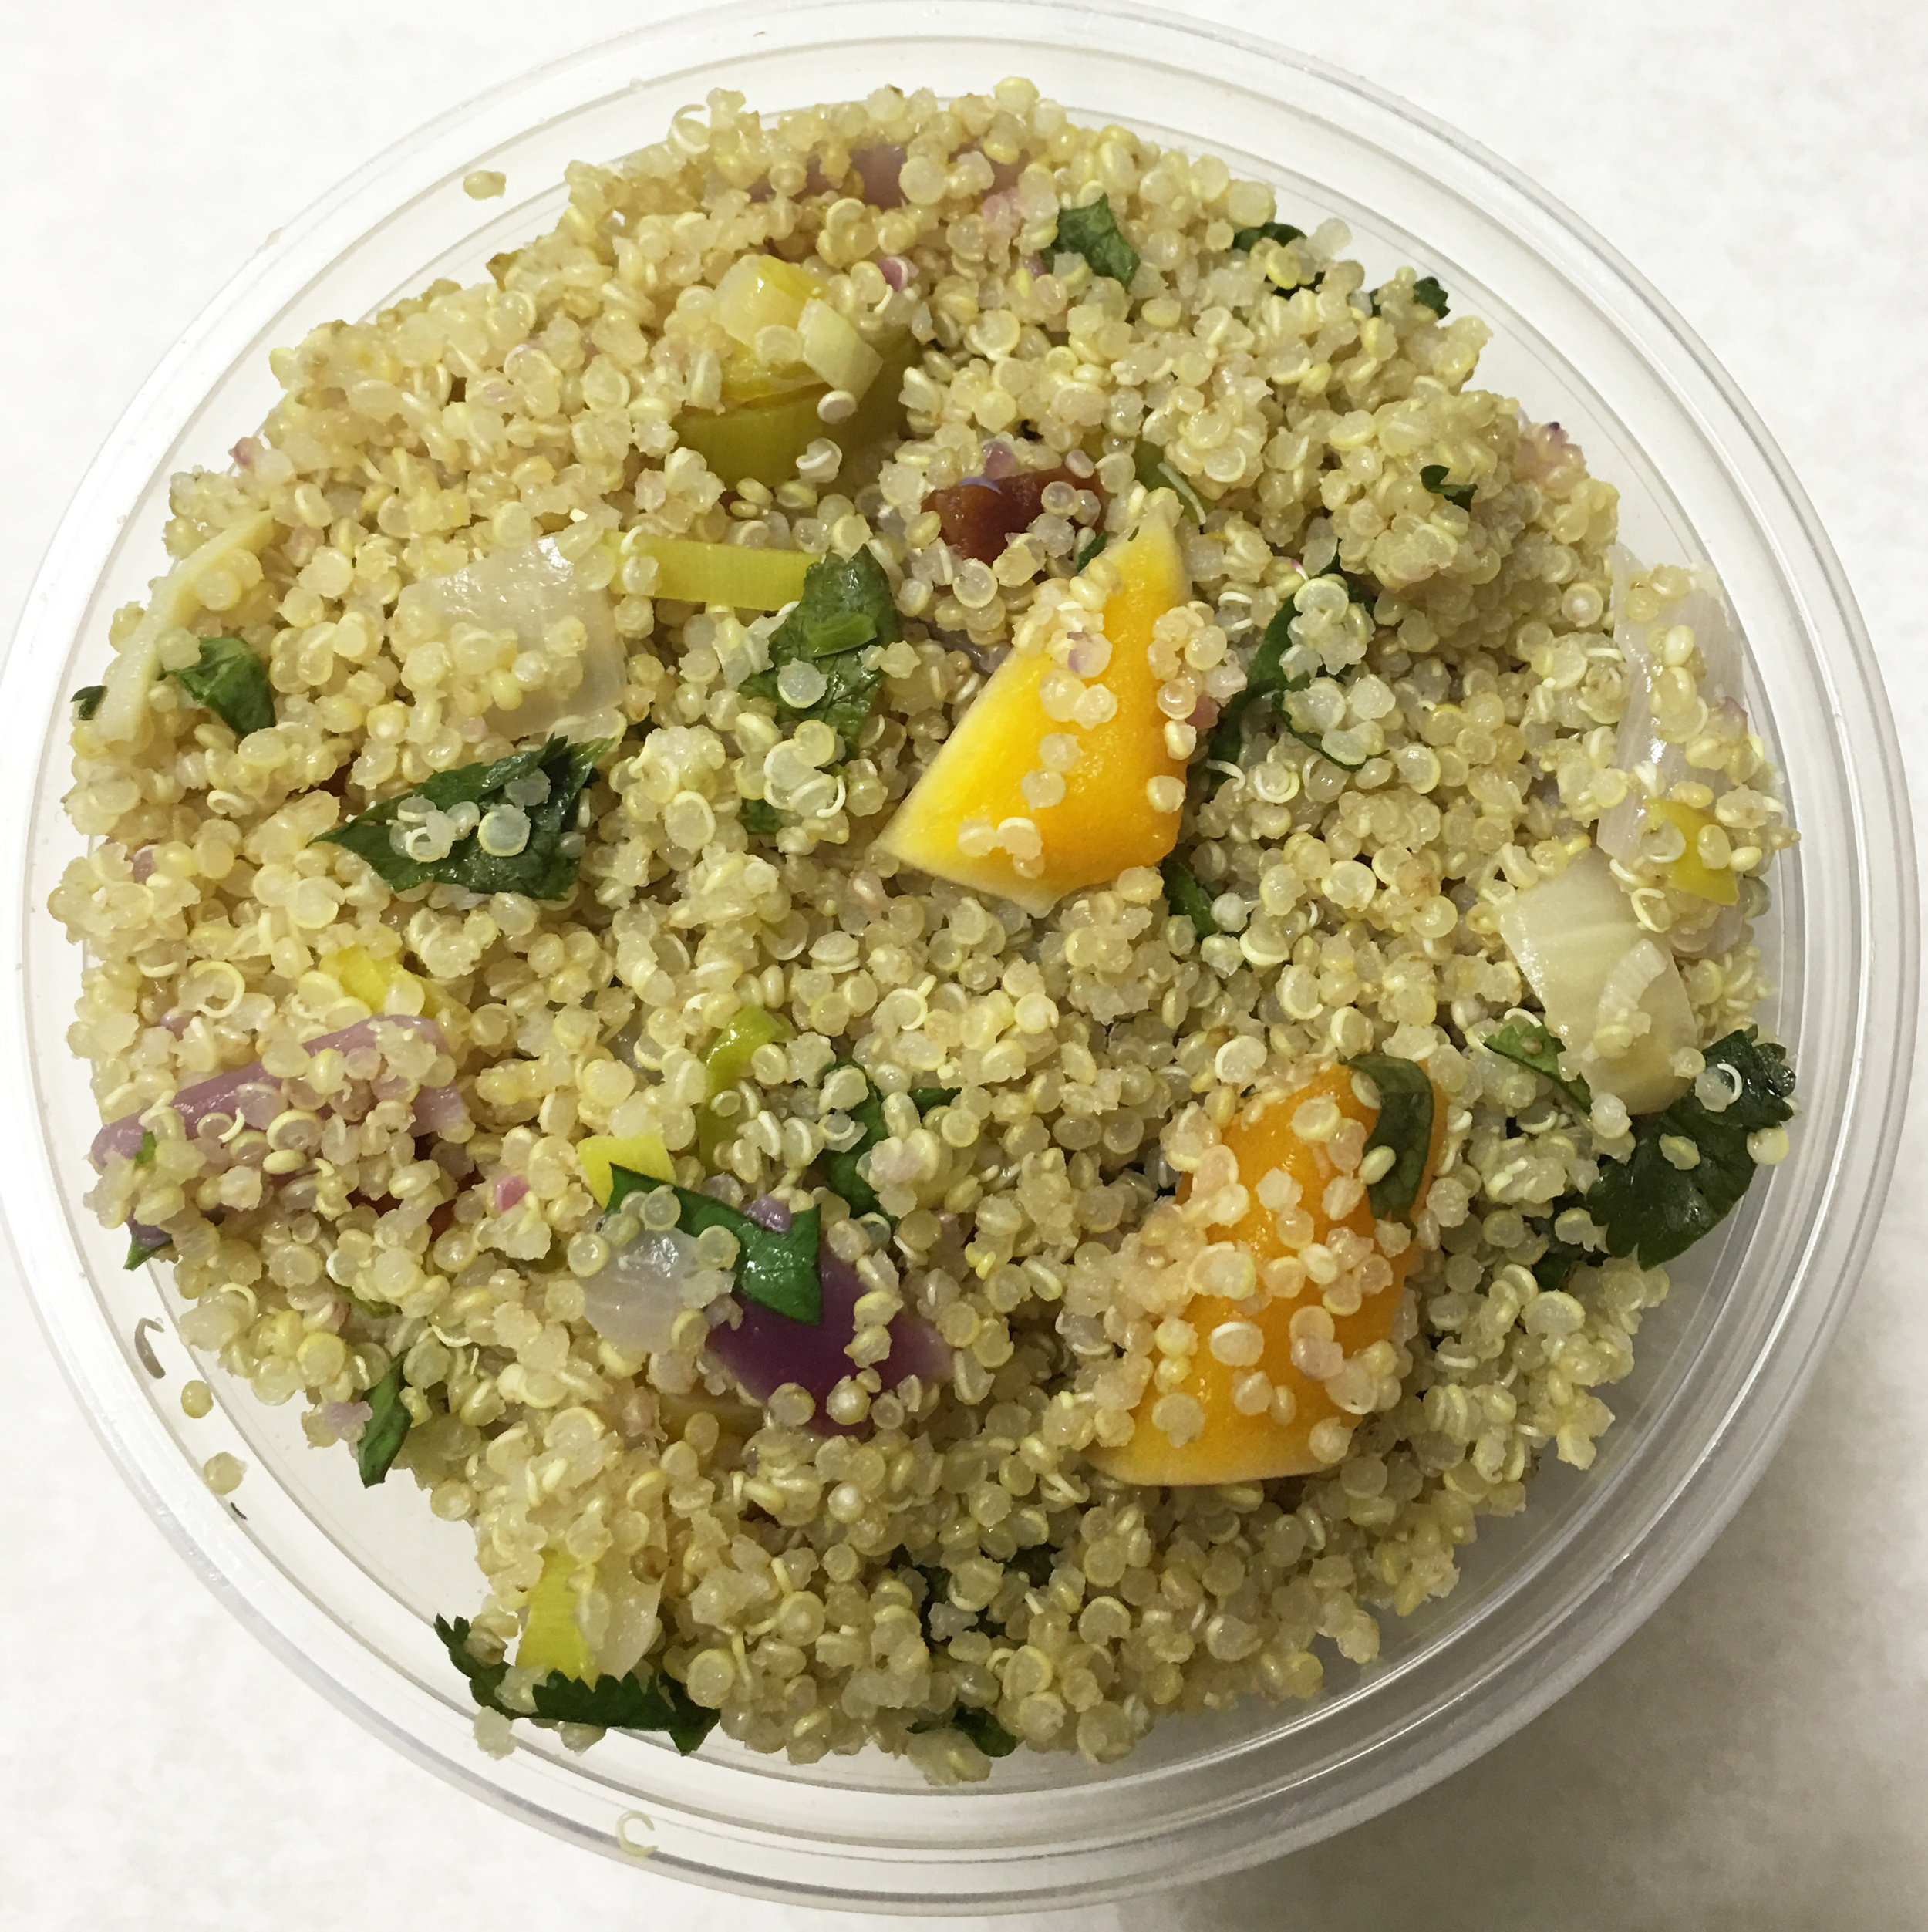 Quinoa salad with butternut squash, onion and parsley.